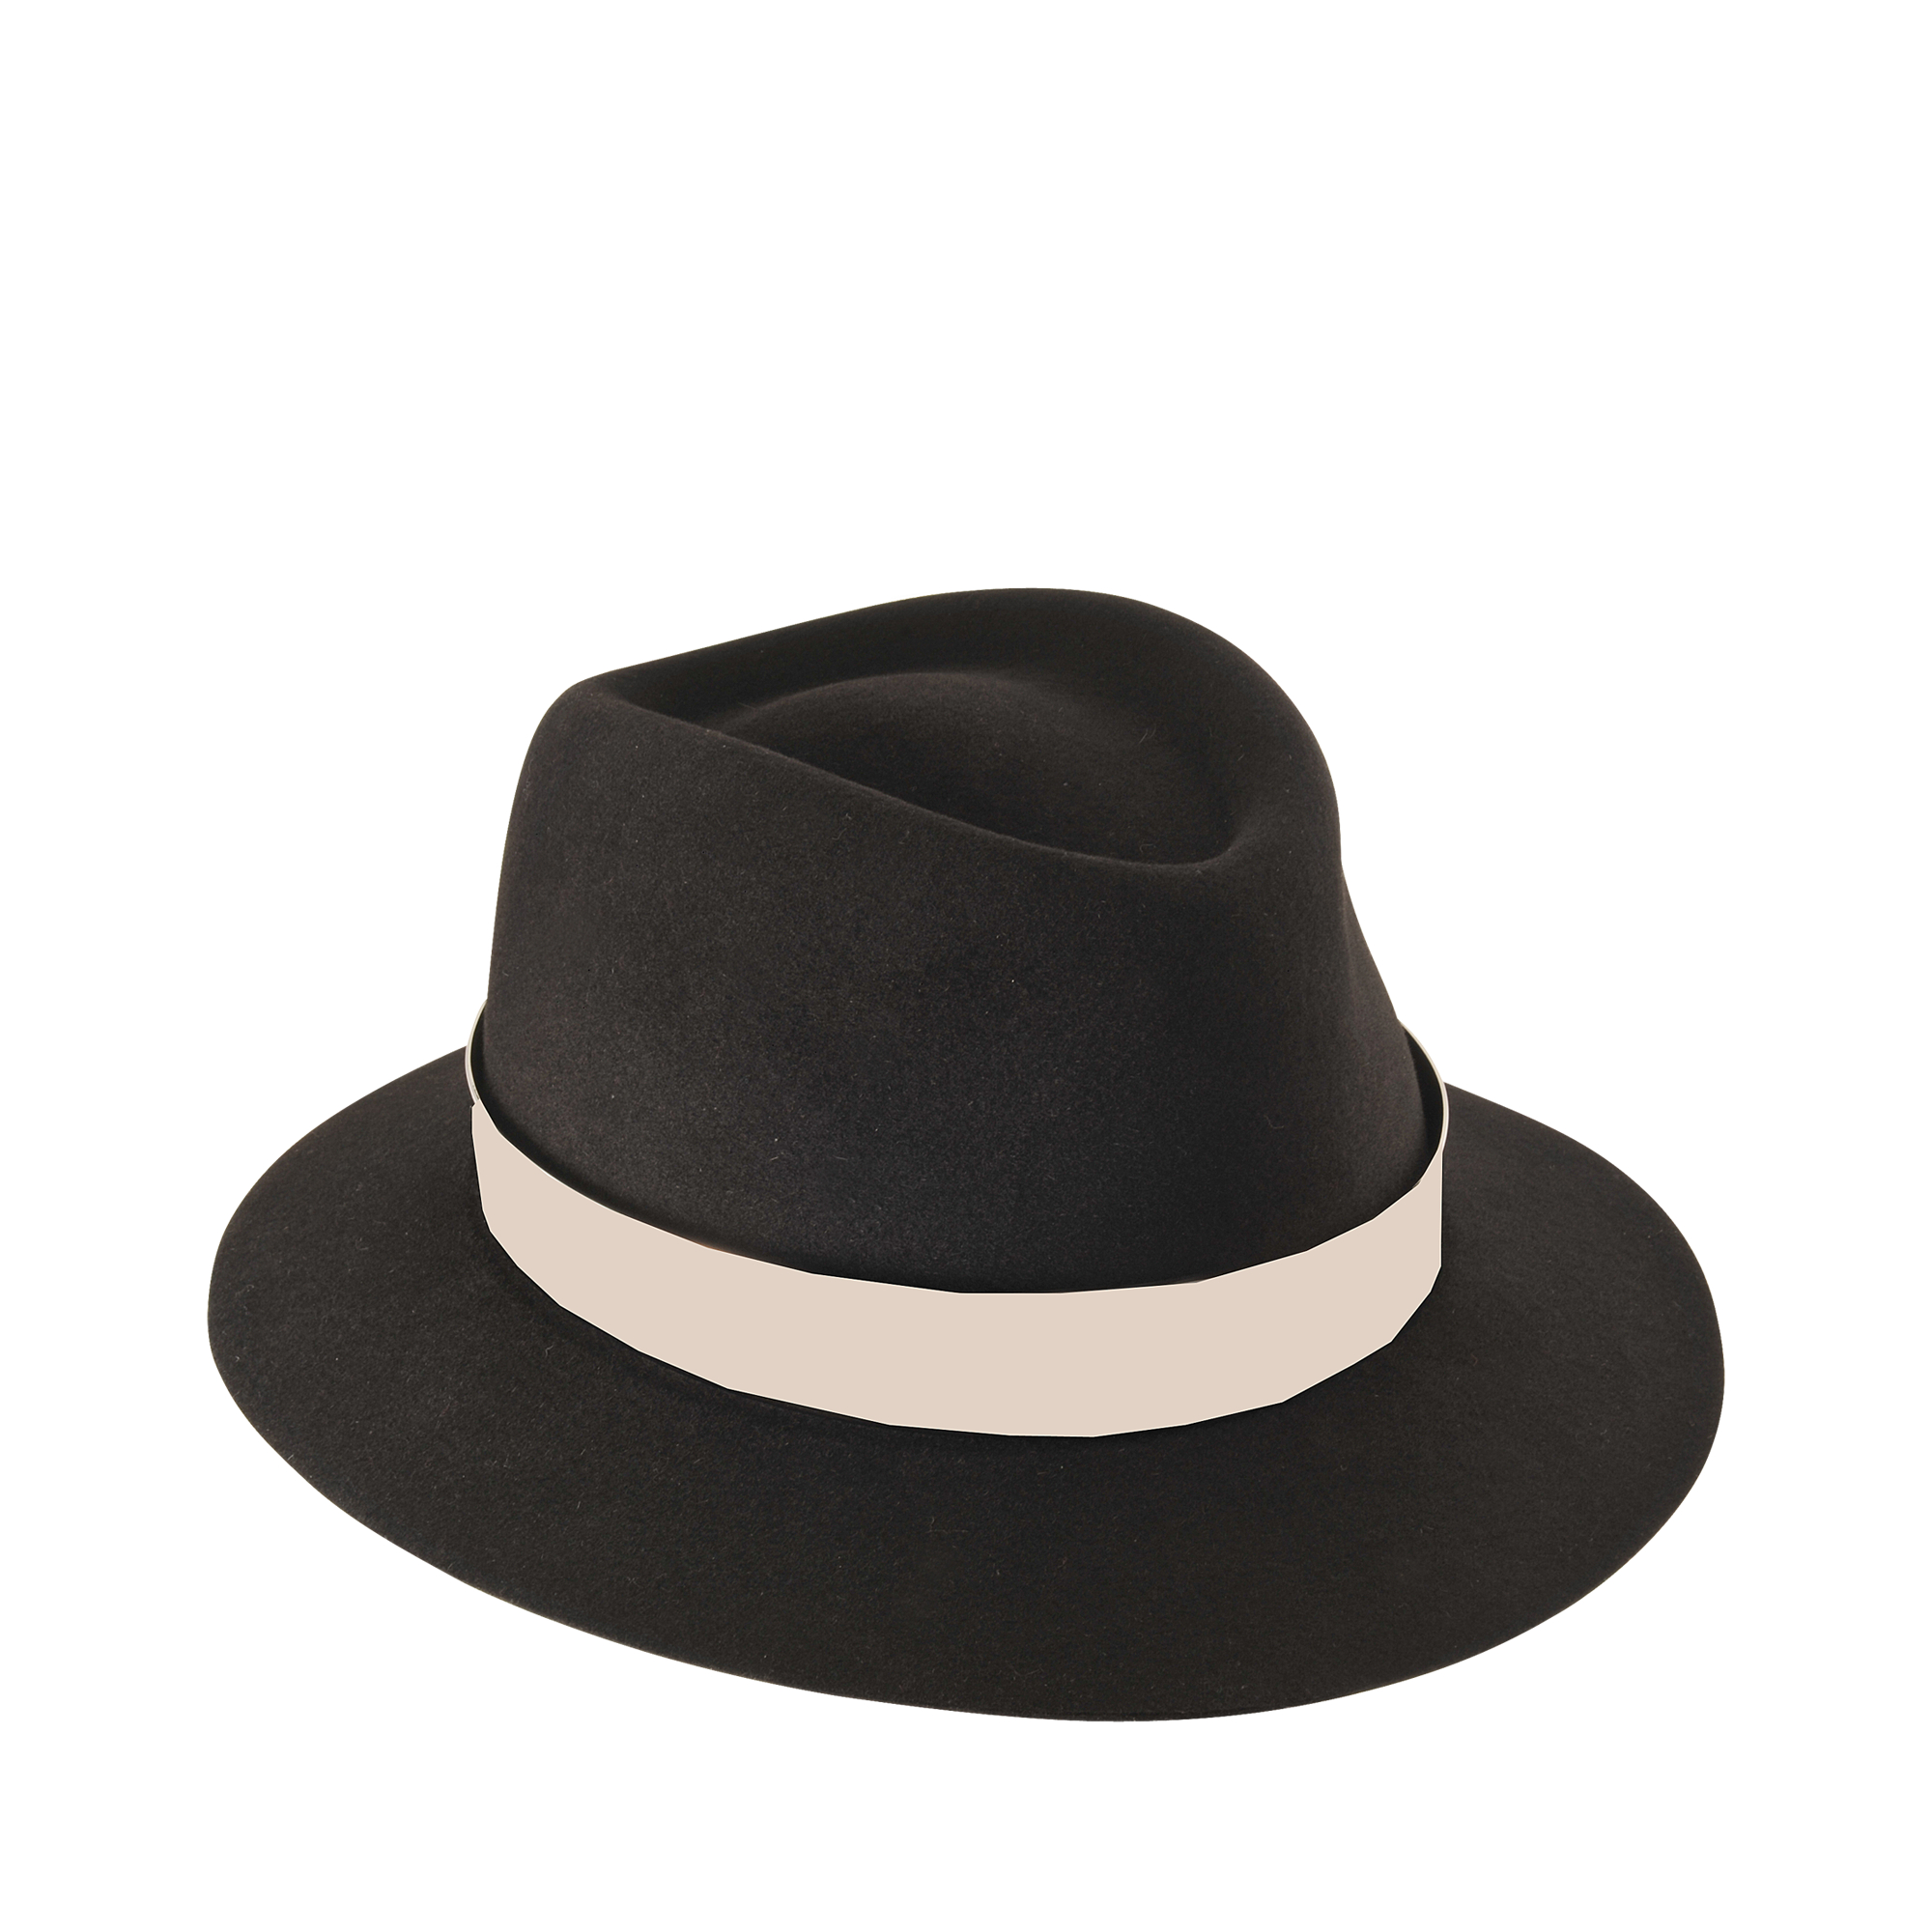 Maison michel andr felt and metal hat in black lyst for Maison michel